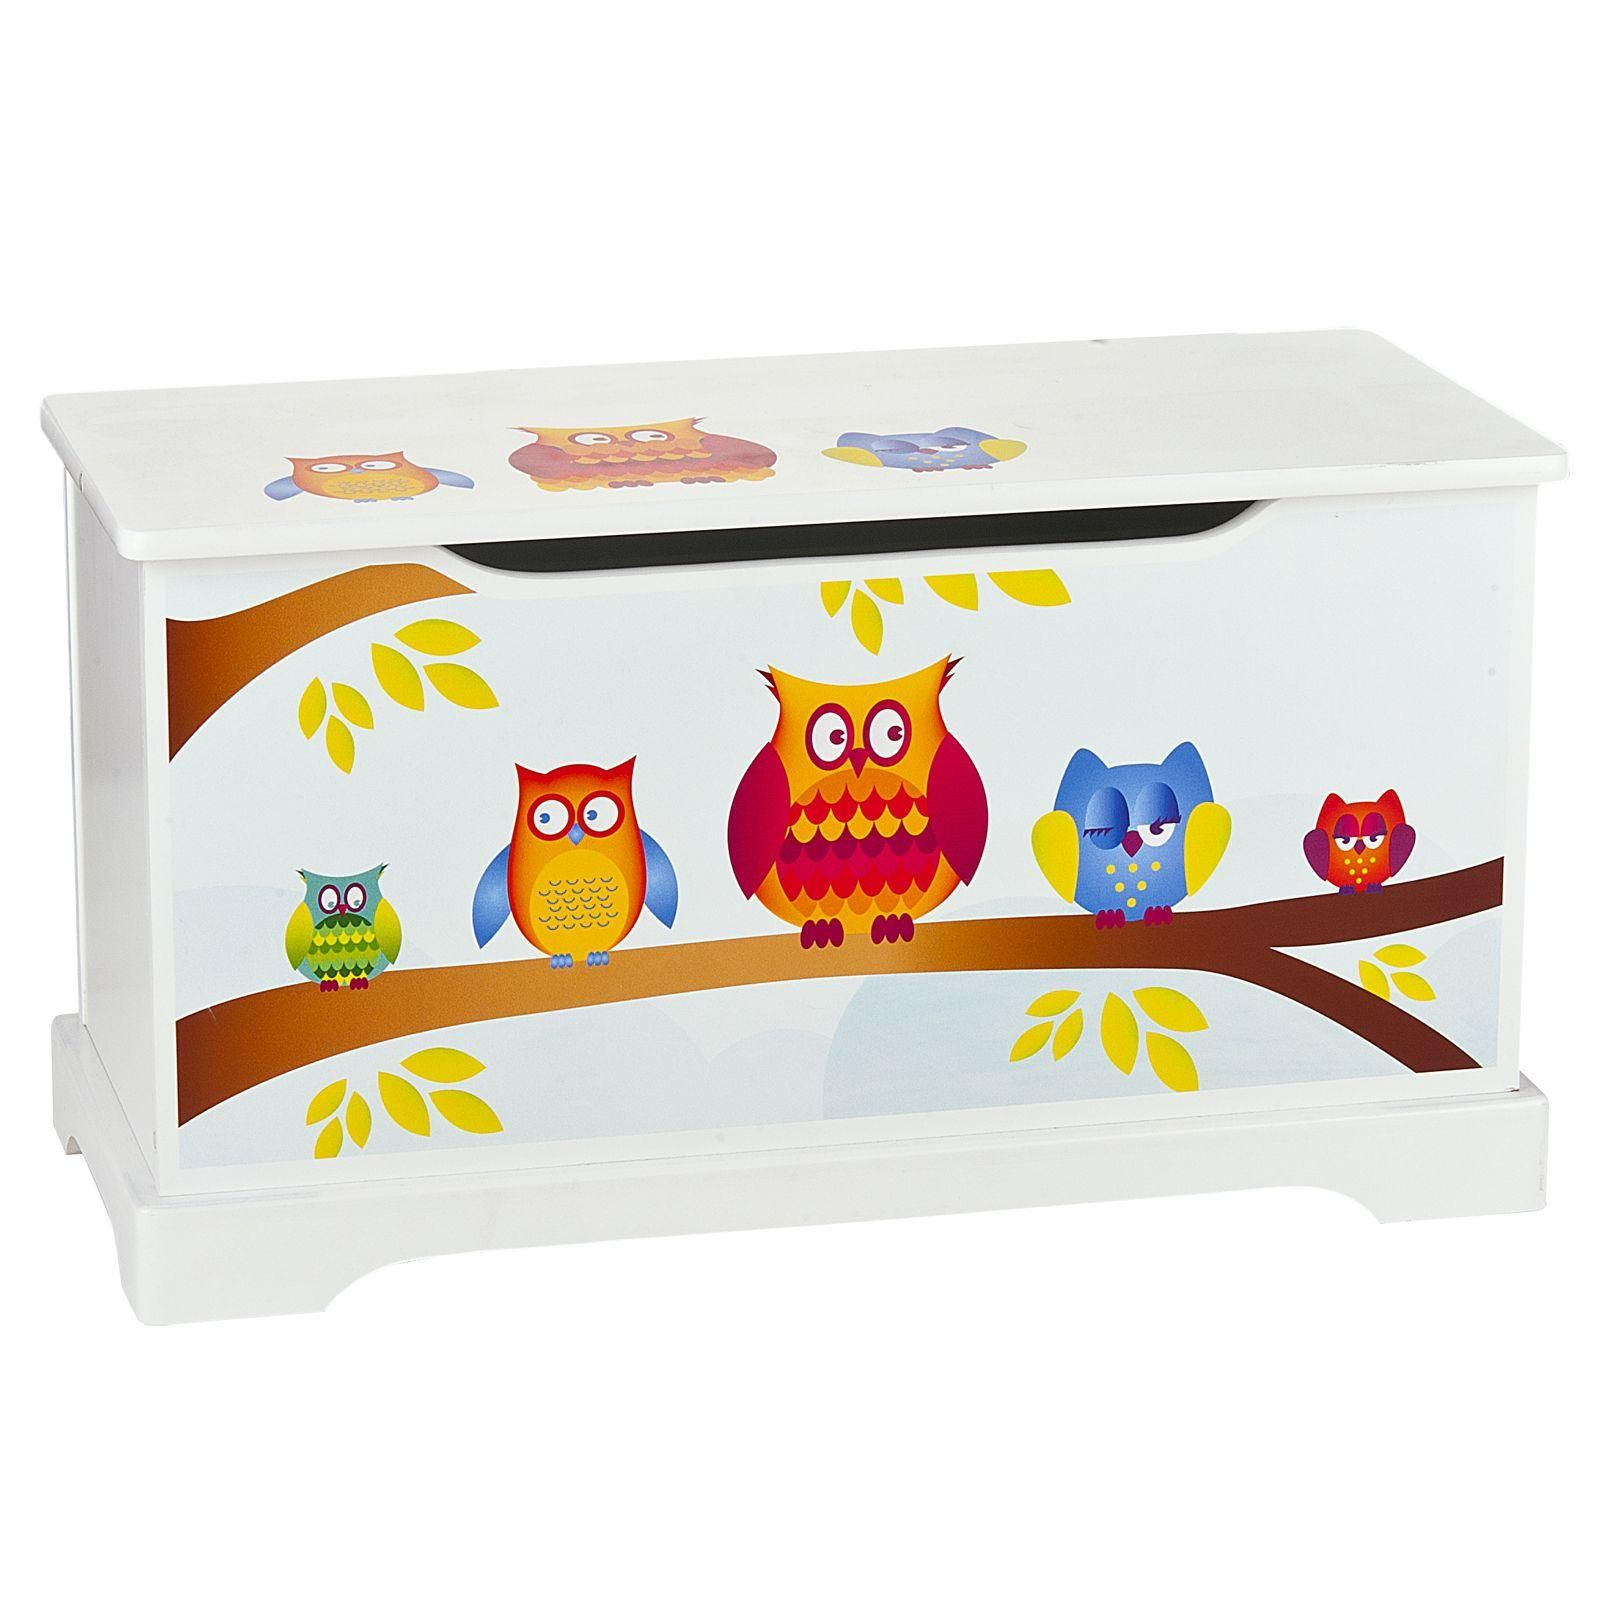 Childrens Wooden Furniture Tables Chairs Toy Boxes Owls Jungle Animals Ebay